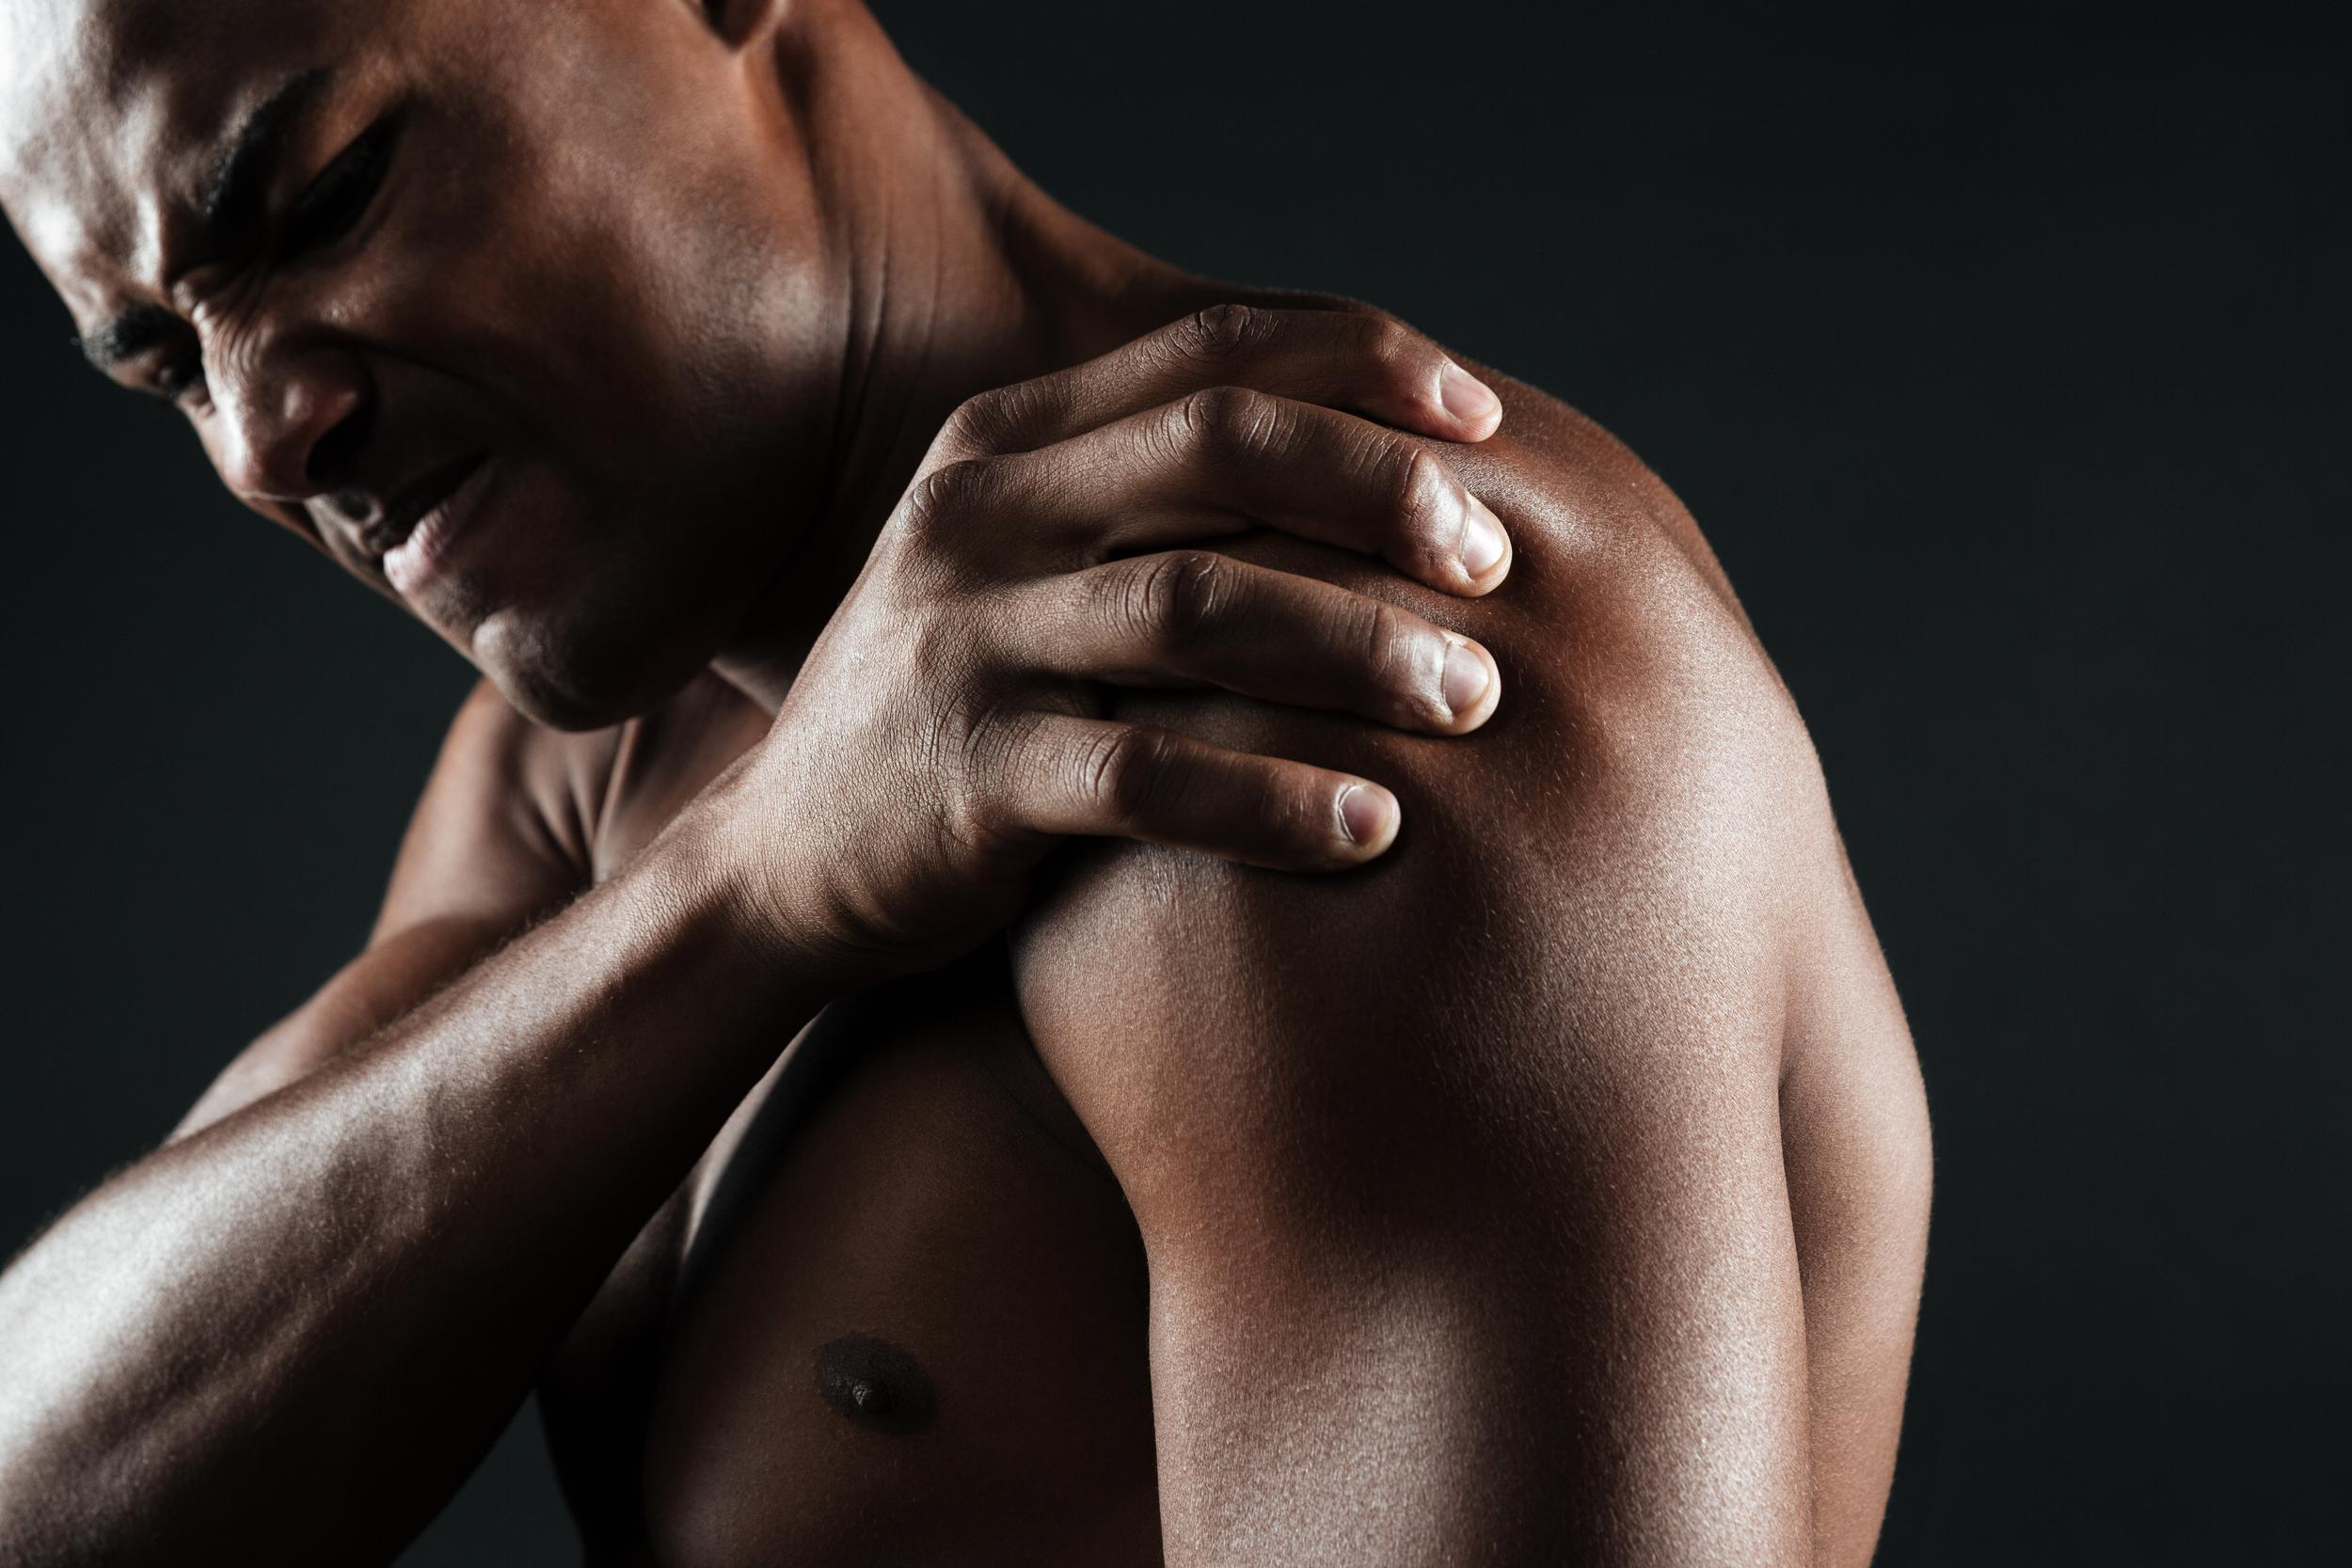 shirtless man holding his shoulder and wincing in pain